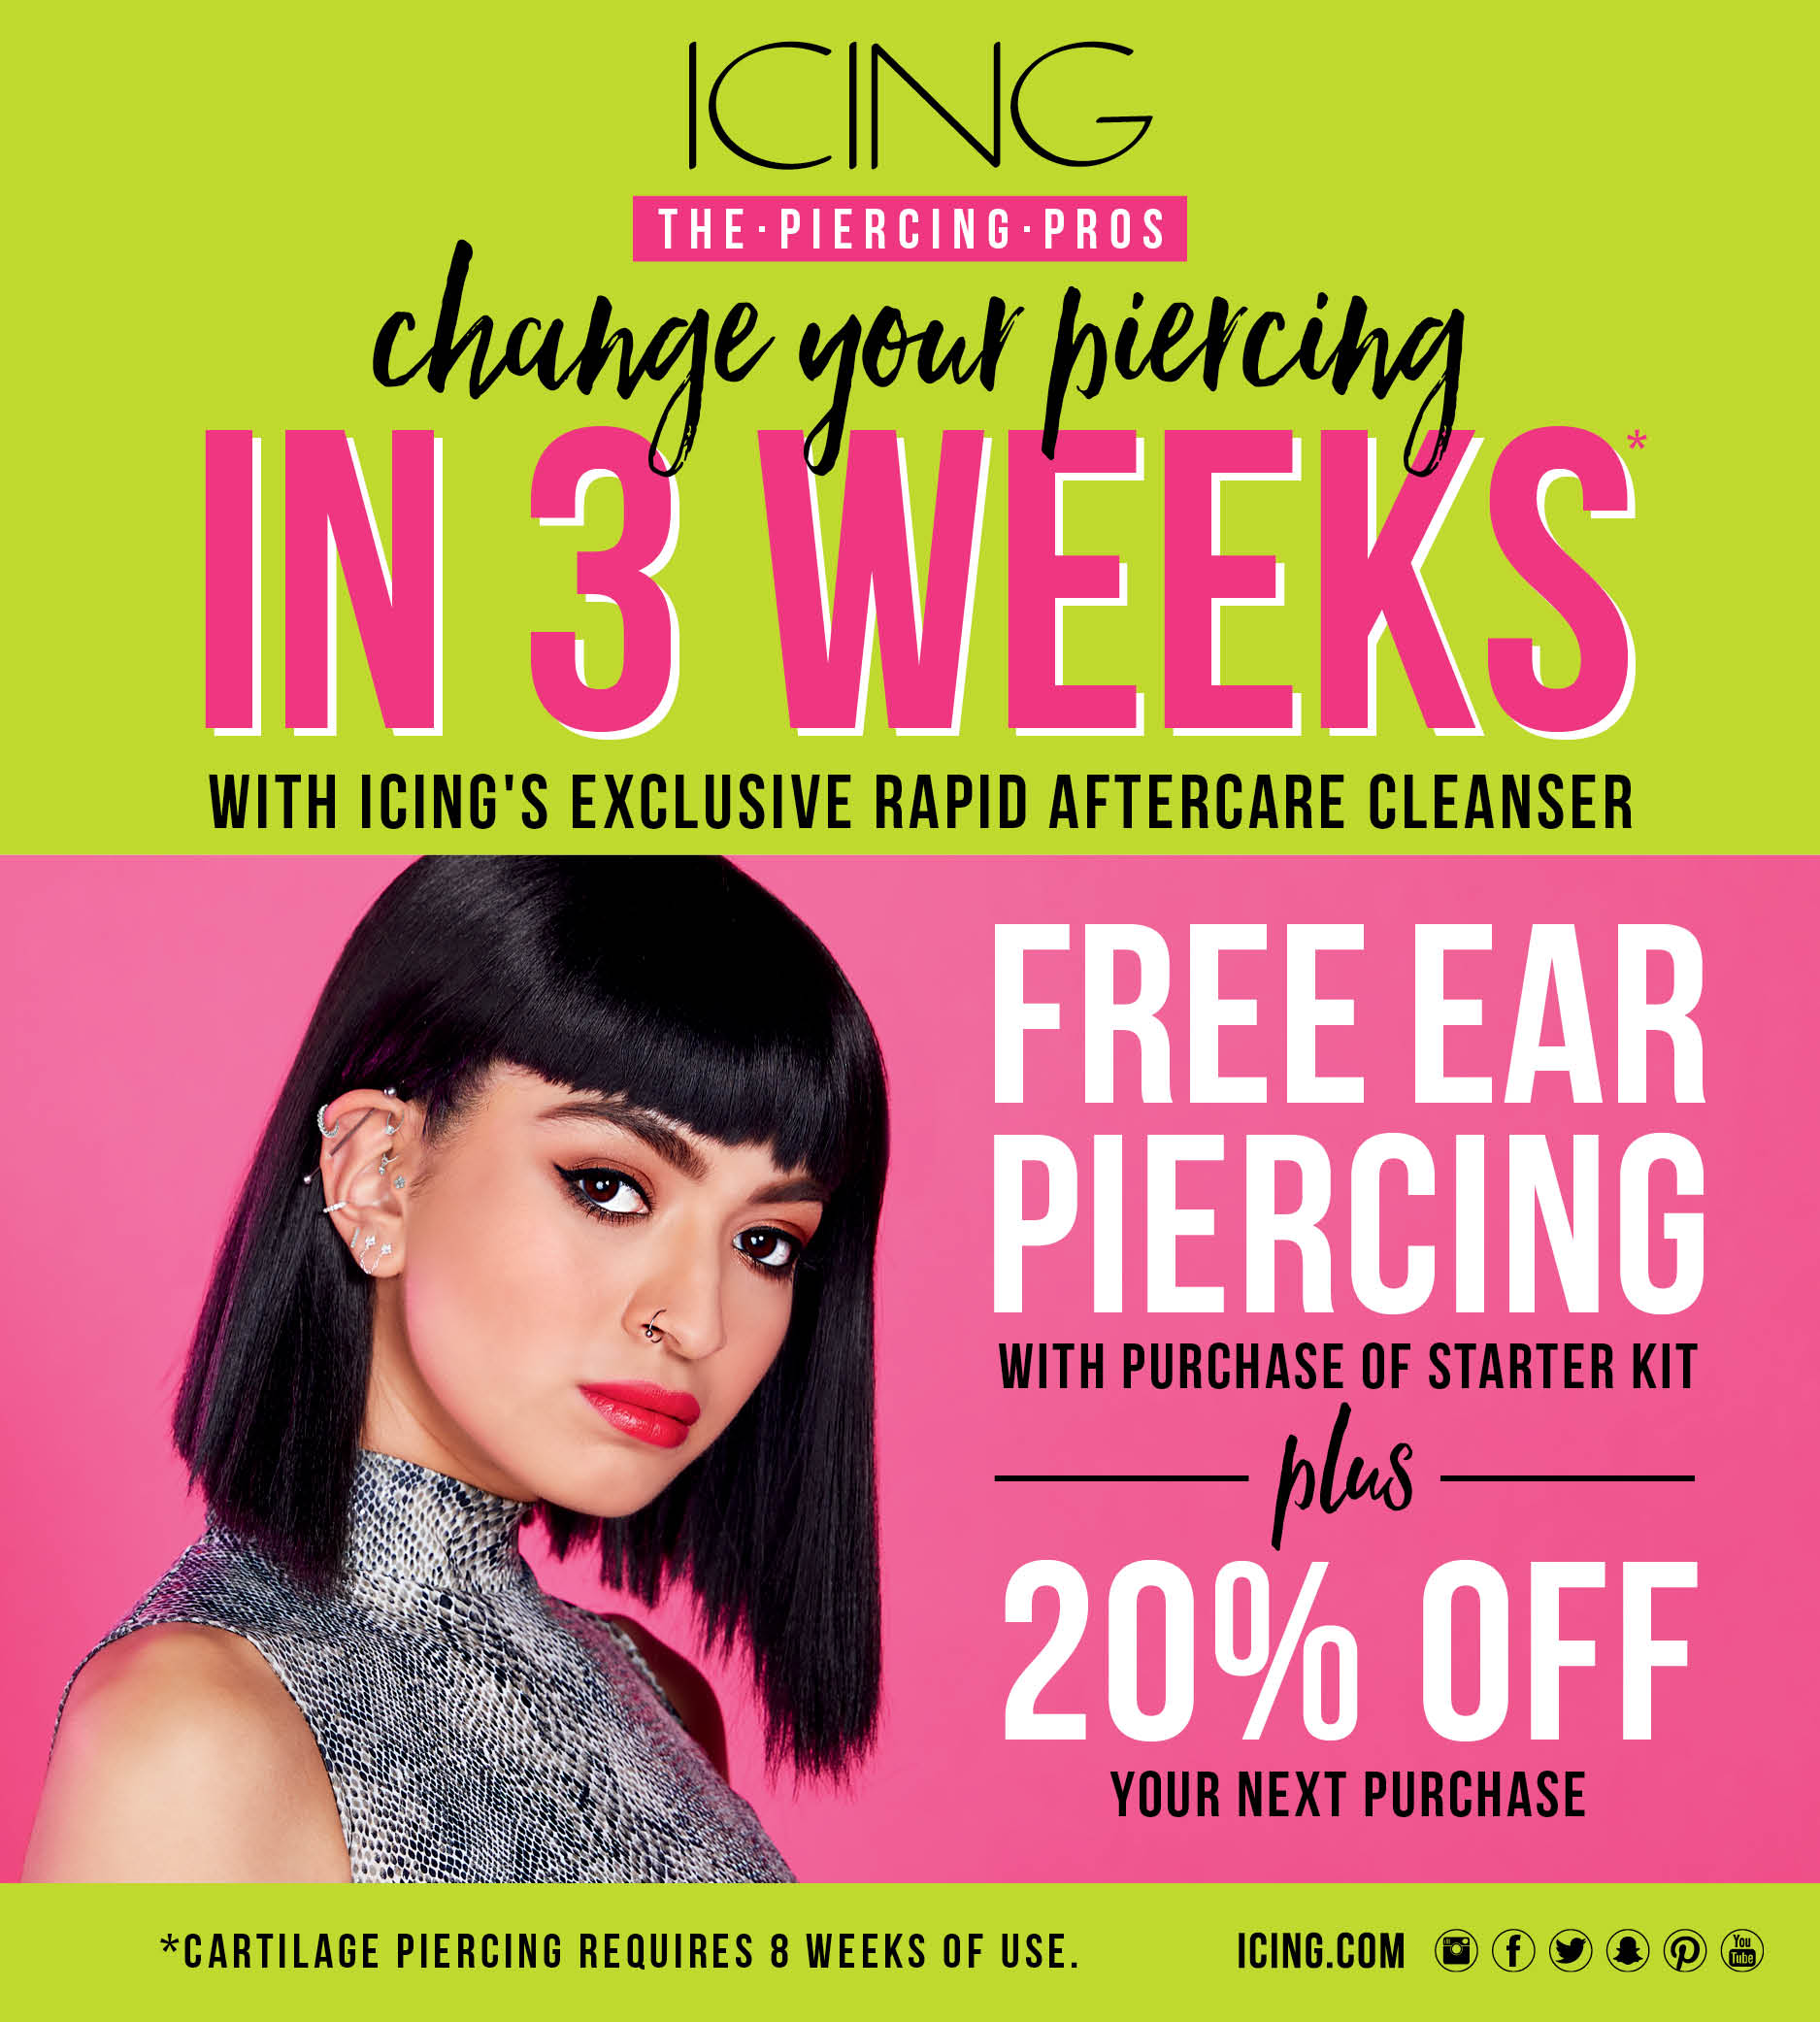 Icing logo. The piercing pros. Change your piercing in 3 weeks with Icing's exclusive rapid aftercare cleanser. Free ear piercing with purchase of starter kit plus 20% off your next purchase. *Cartilage piercing requires 8 weeks of use.  Icing.com. Instagram logo, Facebook logo, Twitter logo, We Heart It logo, Snapchat logo, Pinterest logo, You Tube logo. Image woman with dramatic eyes and lips, black hair in a bob style, wearing snakeskin with multiple earrings all over her ear and nose ring.